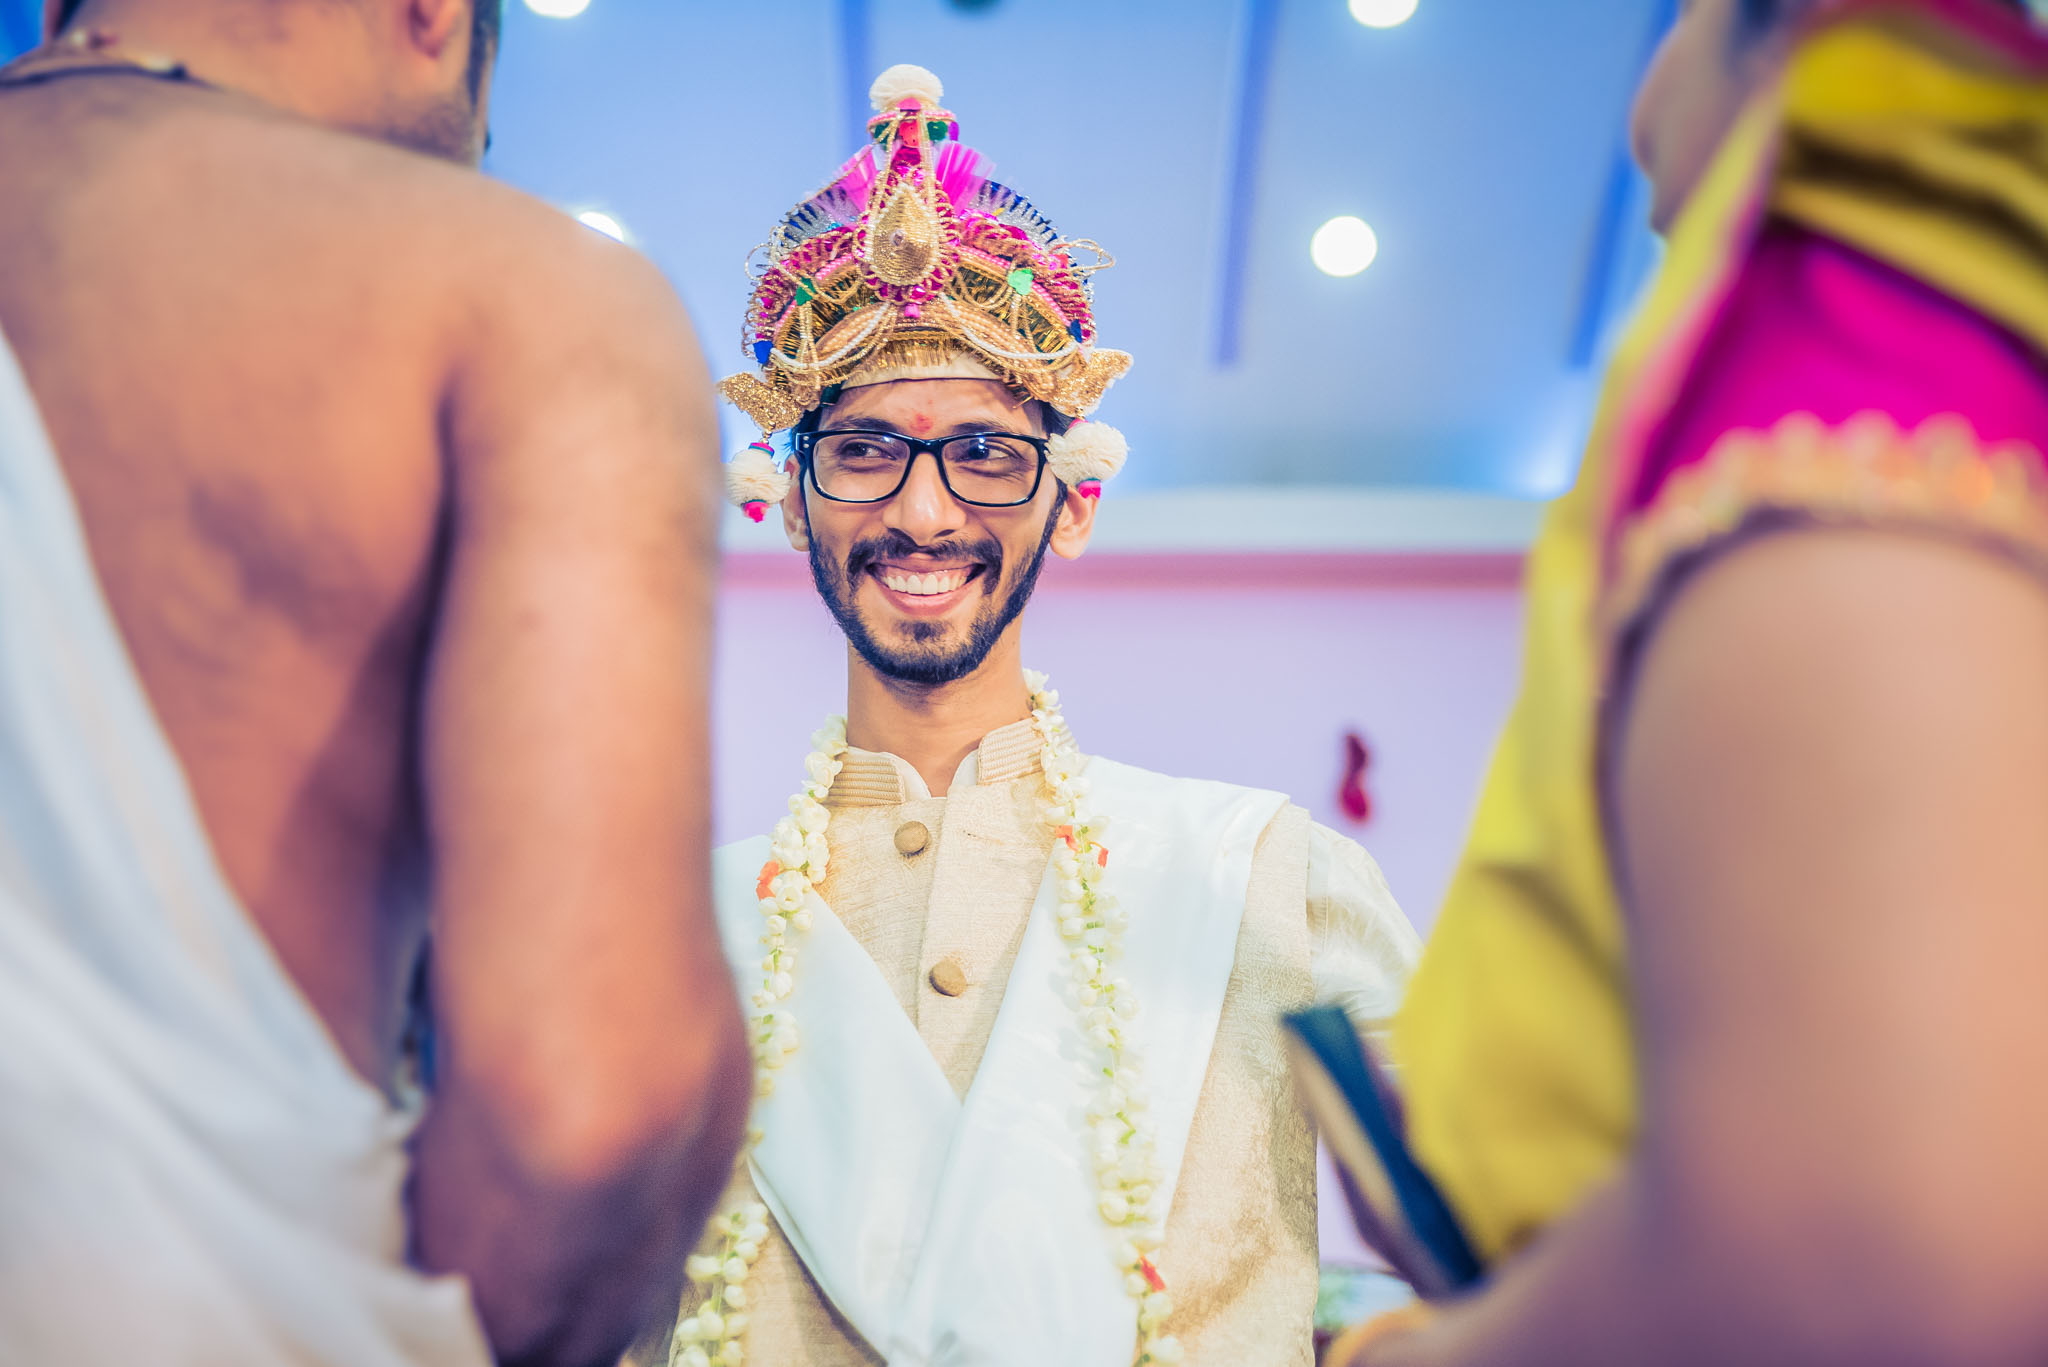 WhatKnot-Candid-Wedding-Photography-Mumbai-Bangalore-156